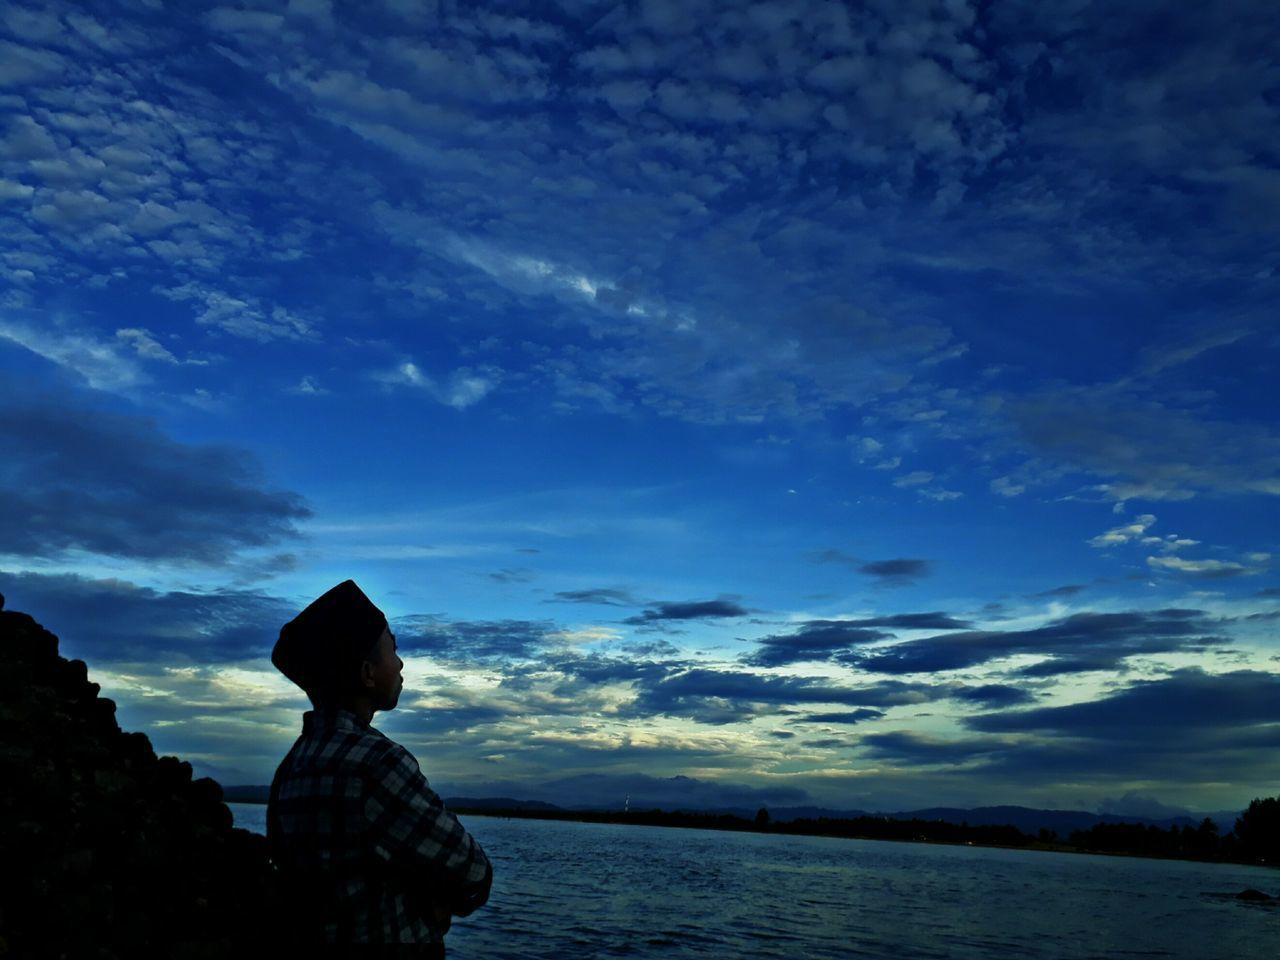 sky, cloud - sky, water, one person, beauty in nature, real people, leisure activity, lifestyles, silhouette, scenics - nature, nature, sea, blue, waist up, tranquility, men, tranquil scene, sunset, outdoors, looking at view, contemplation